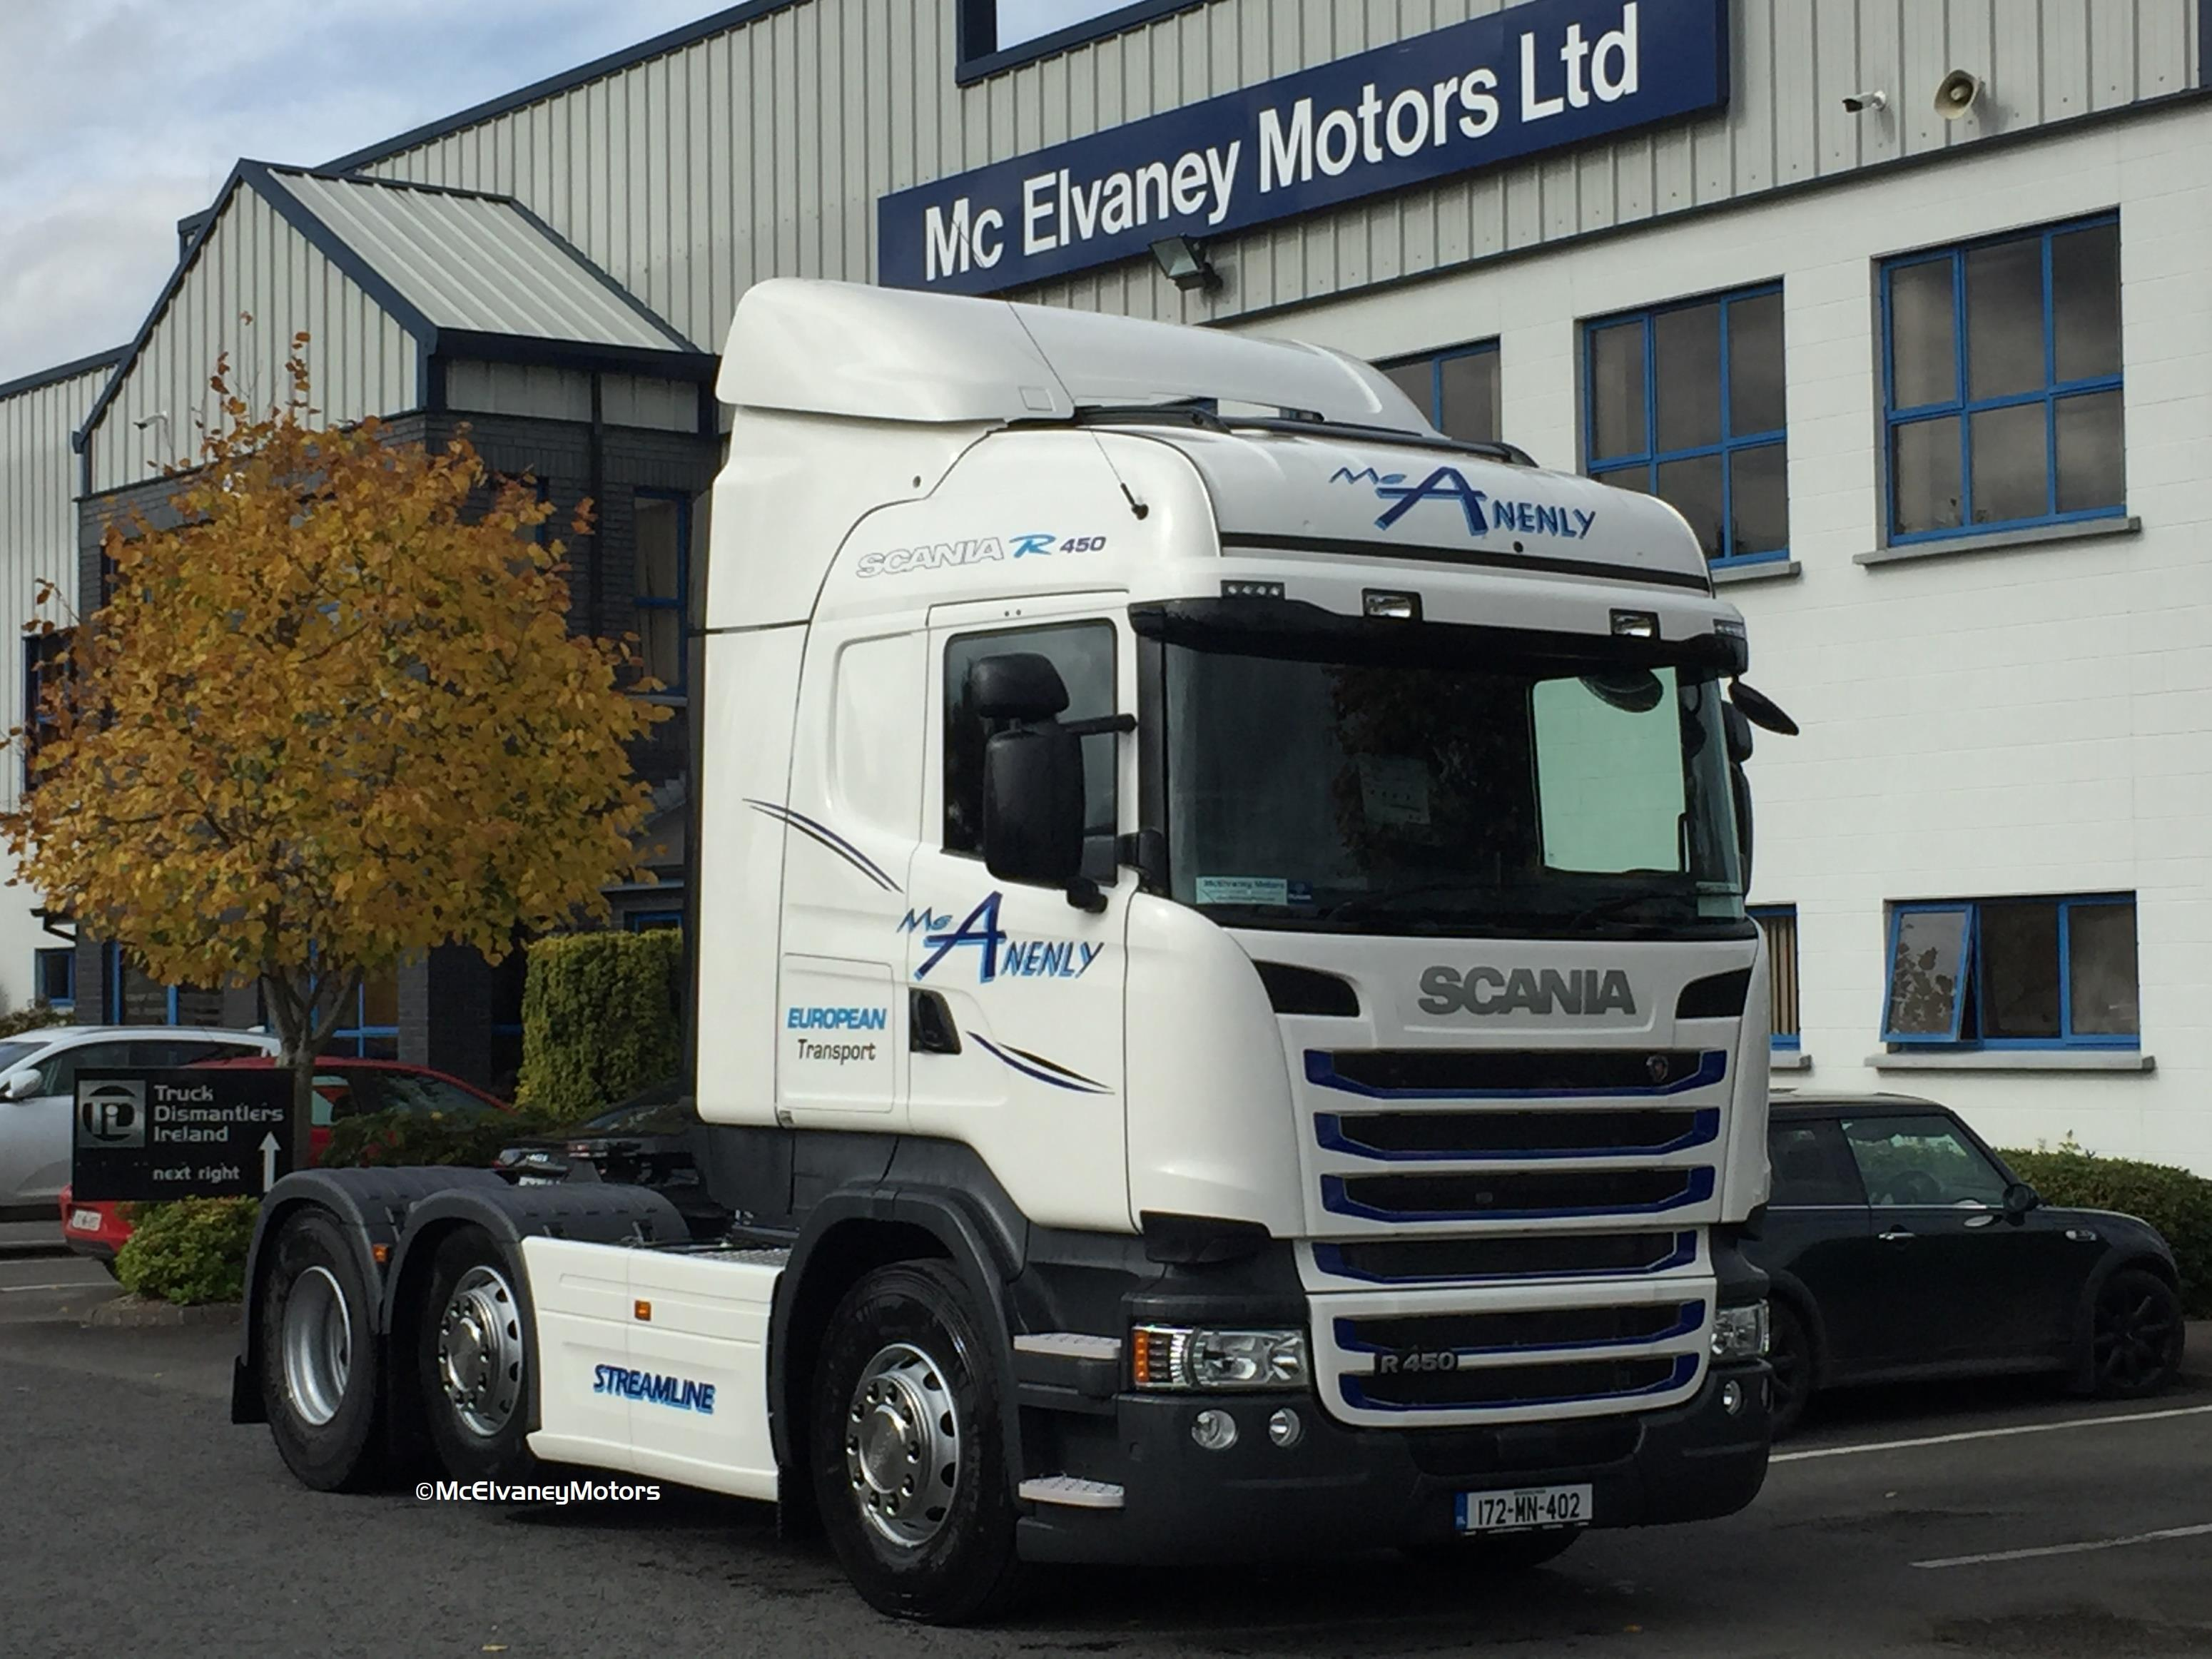 New Scania for McAnenly European Transport